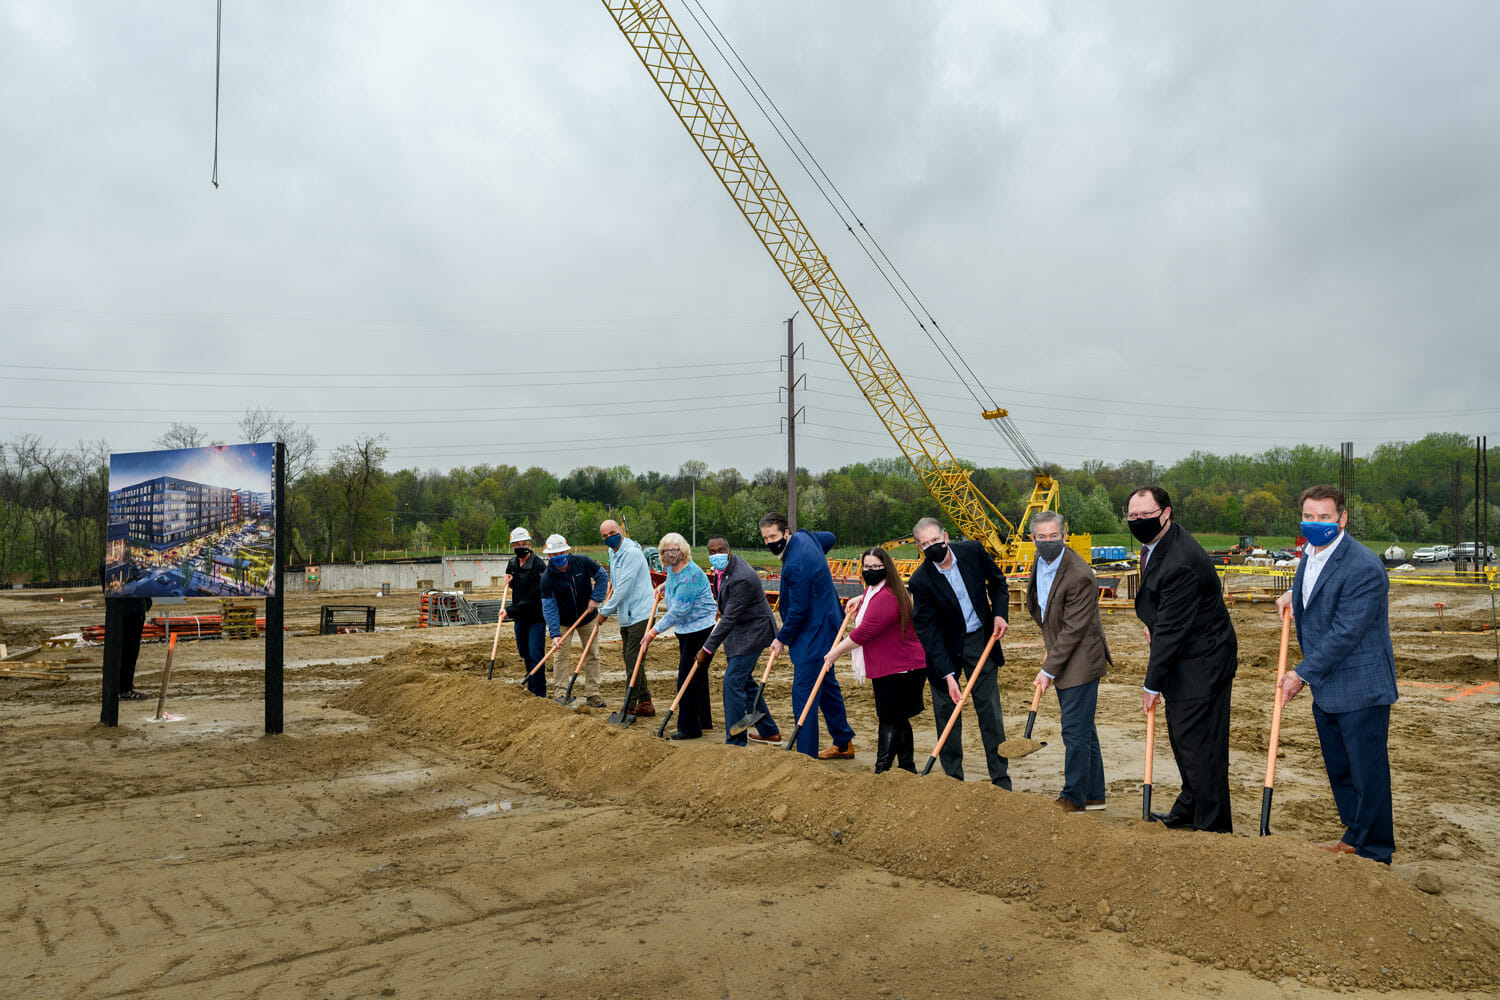 Marlow, A New 510,000 SF Residential Building Breaks Ground In Downtown Columbia